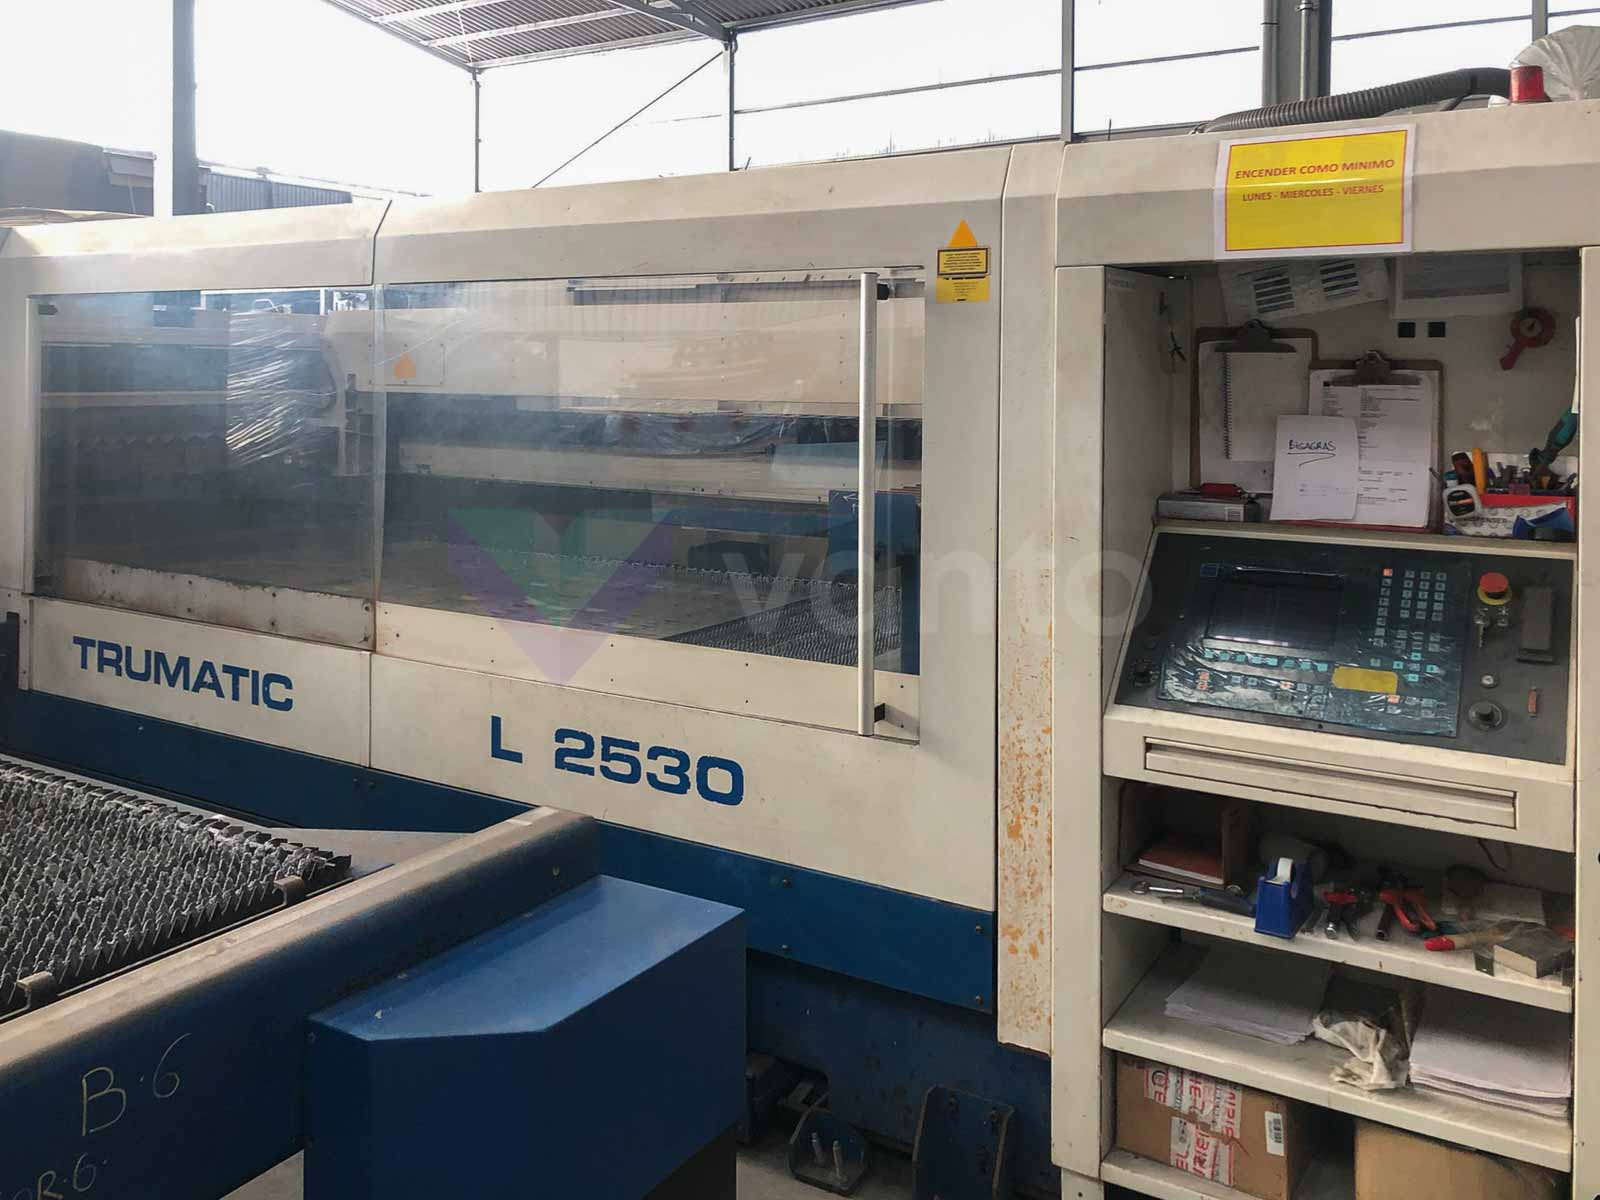 TRUMPF TRUMATIC L2530 Laser cutting machine (CO2) (2004) id10557